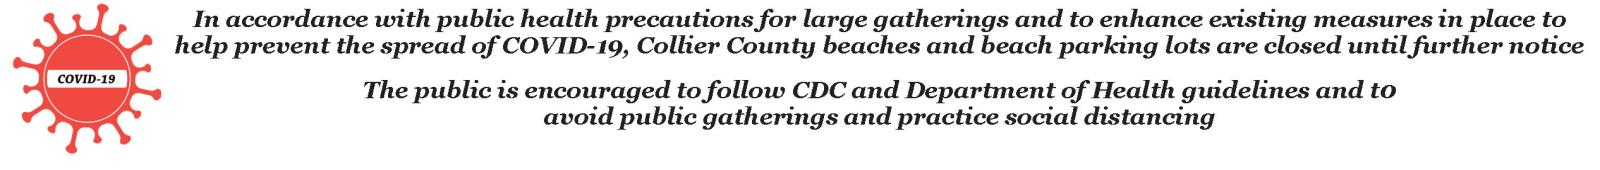 3-20-2020-Beach-and-Beach-Parking-Lots-Closings